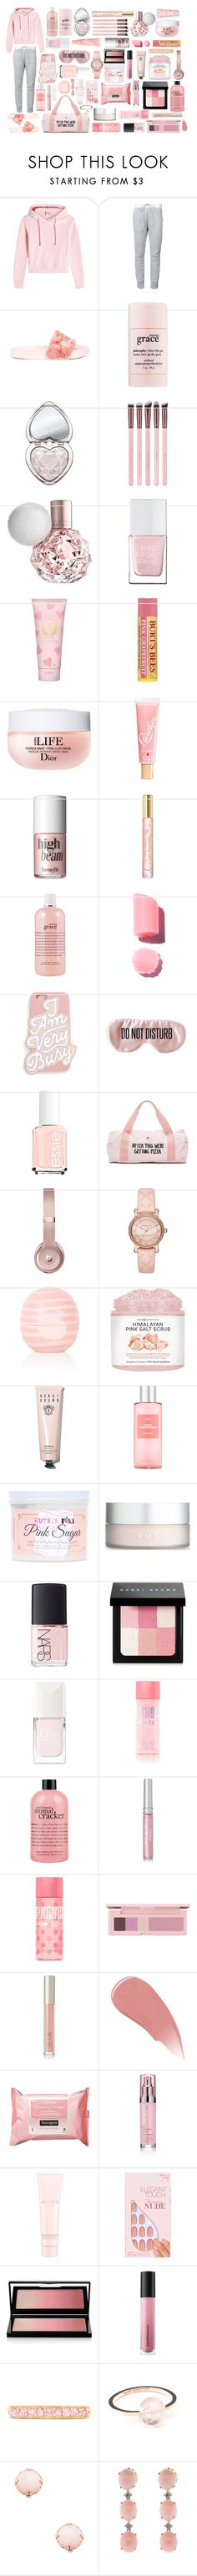 """- Blush Pink"" by goddess-of-magic ❤ liked on Polyvore featuring Vetements, Sacai, Puma, philosophy, Too Faced Cosmetics, Luxie, The Hand & Foot Spa, Tory Burch, Lano and Benefit"